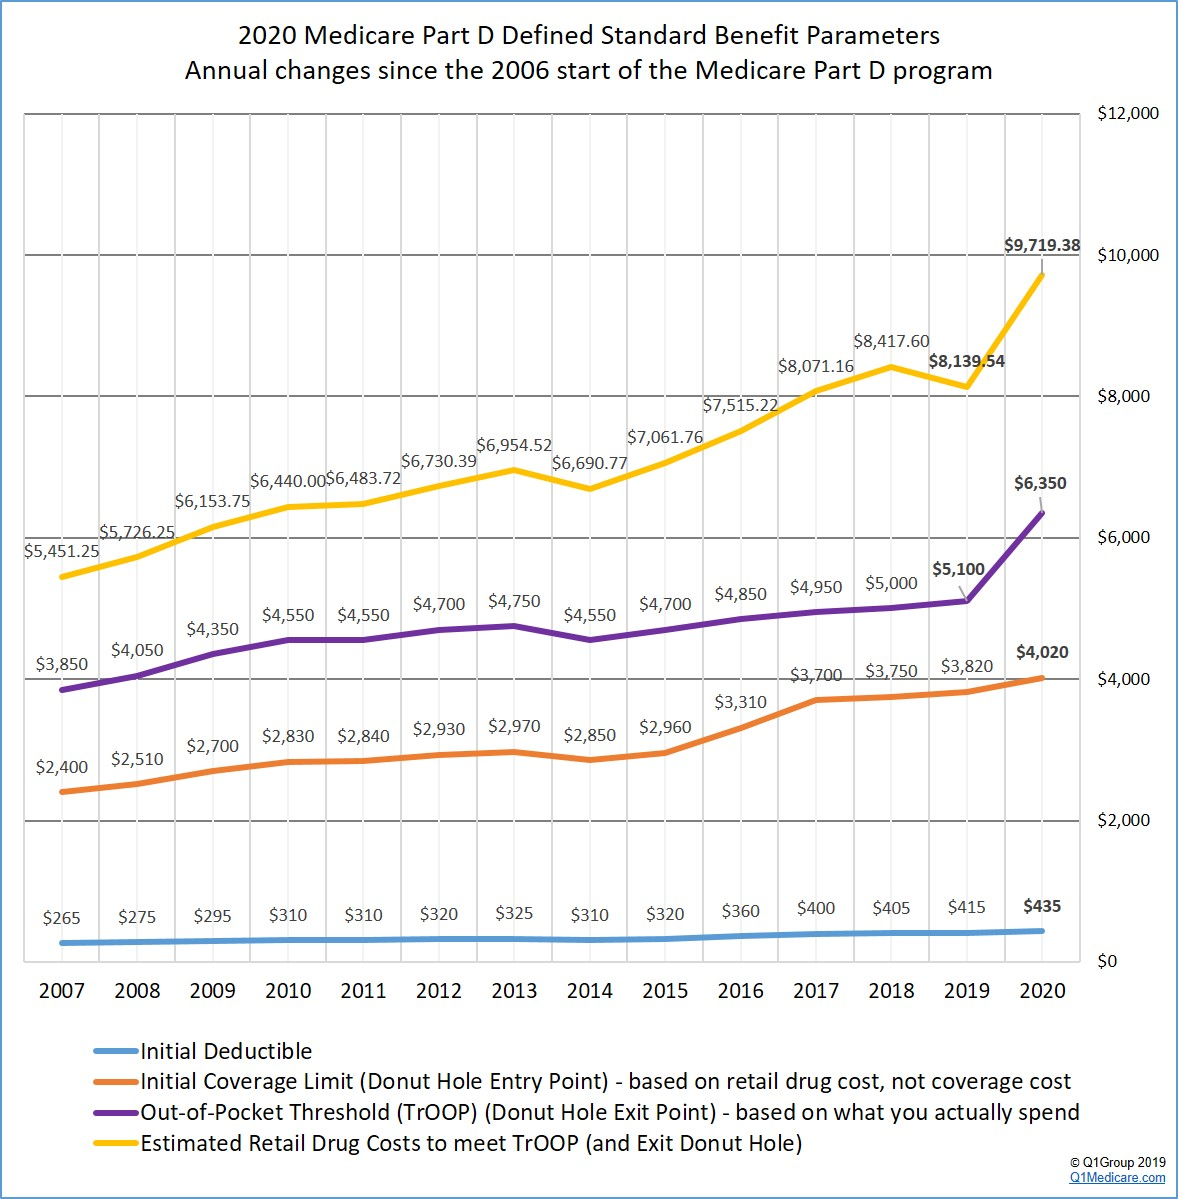 How your Medicare Part D coverage changes over the years